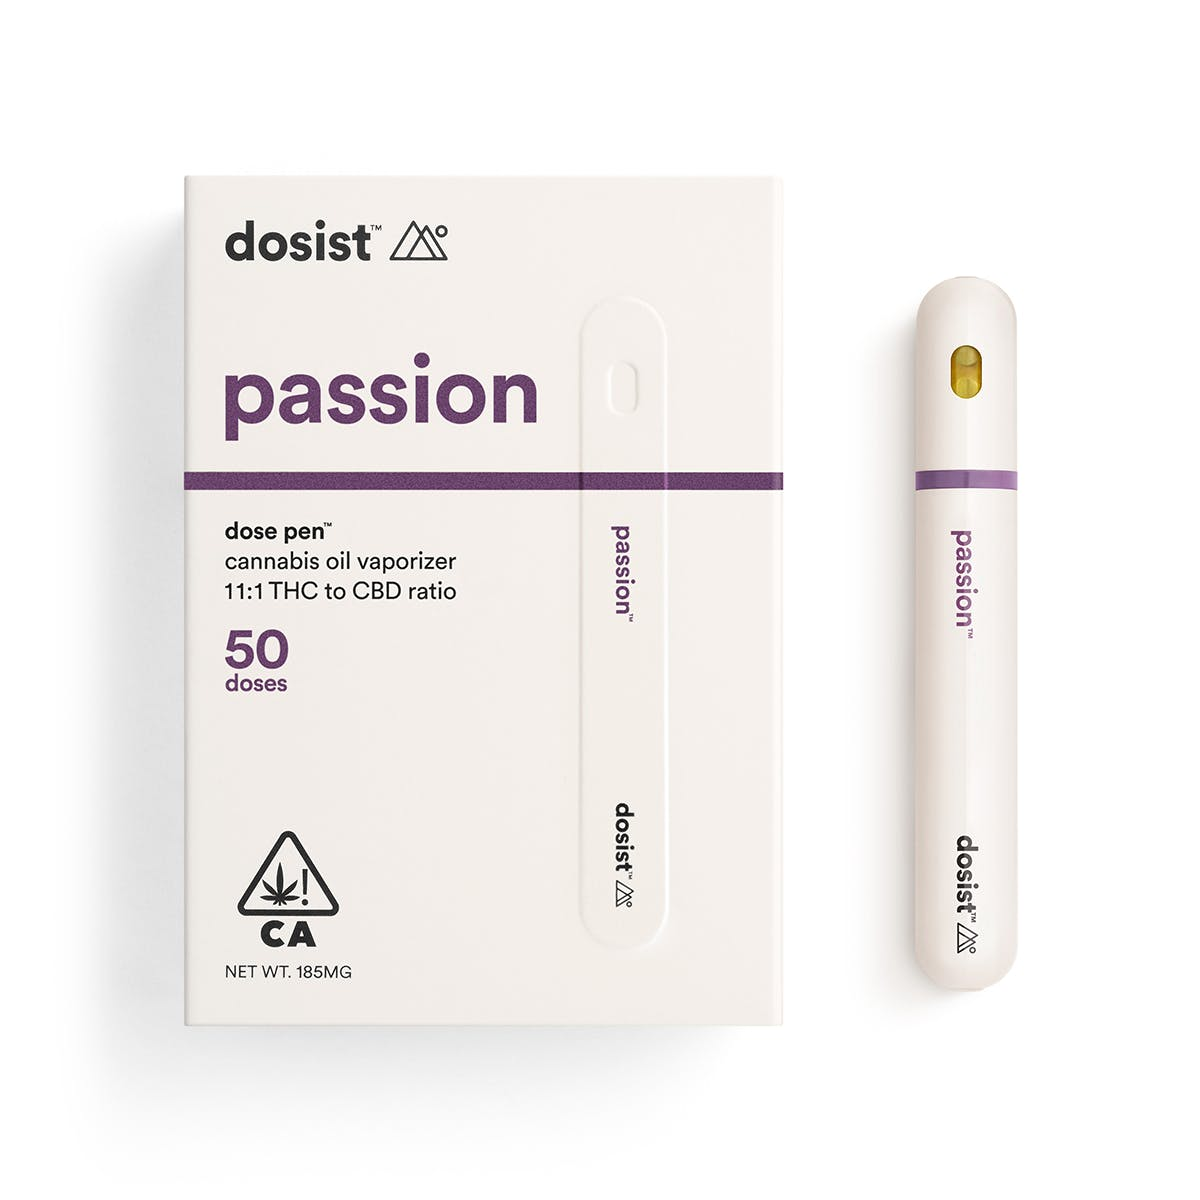 passion by dosist™ dose pen 50